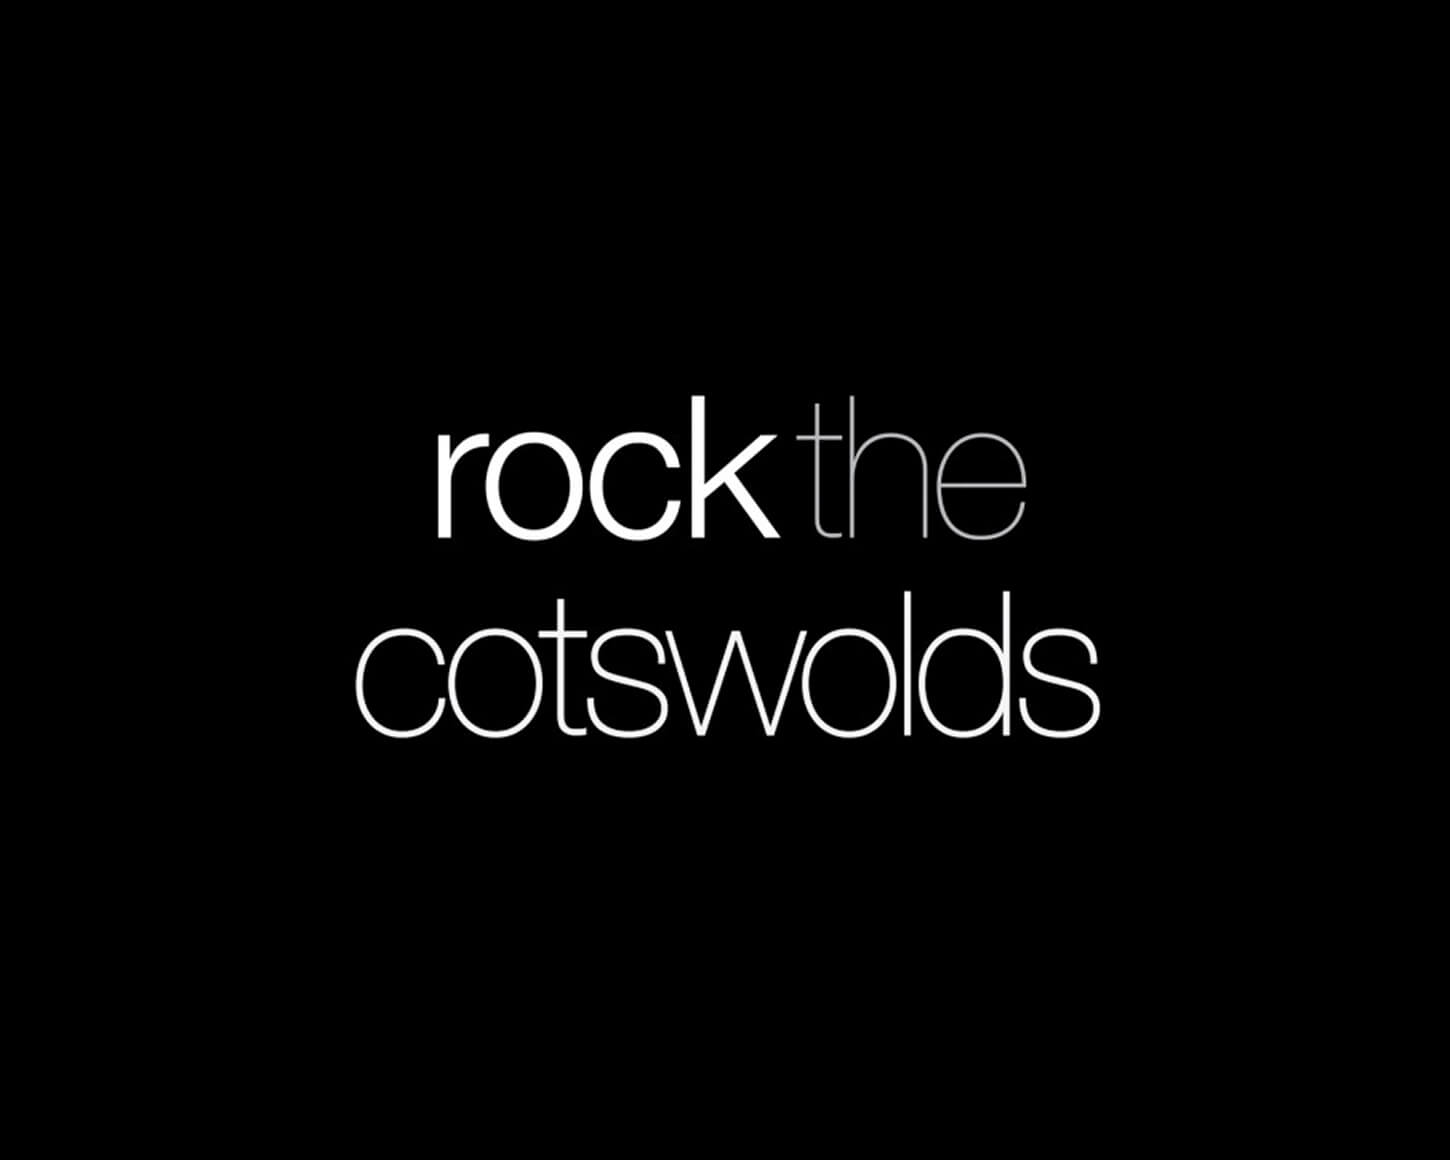 Rock the Cotswolds branding